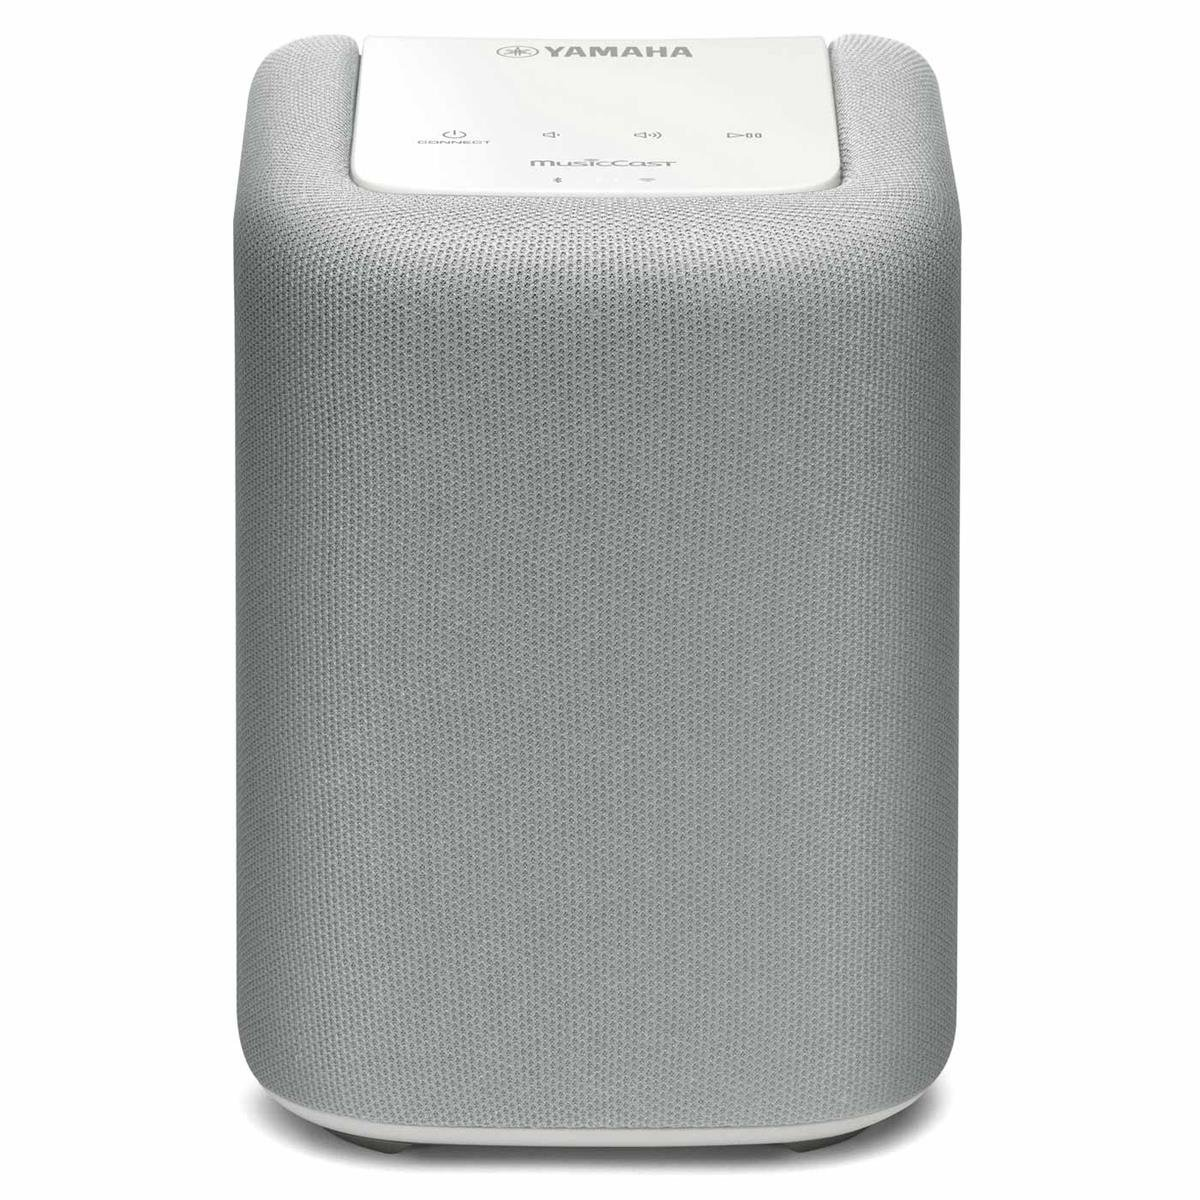 Yamaha MusicCast WX-010 Wireless Speaker with Bluetooth (White), Works with Alexa